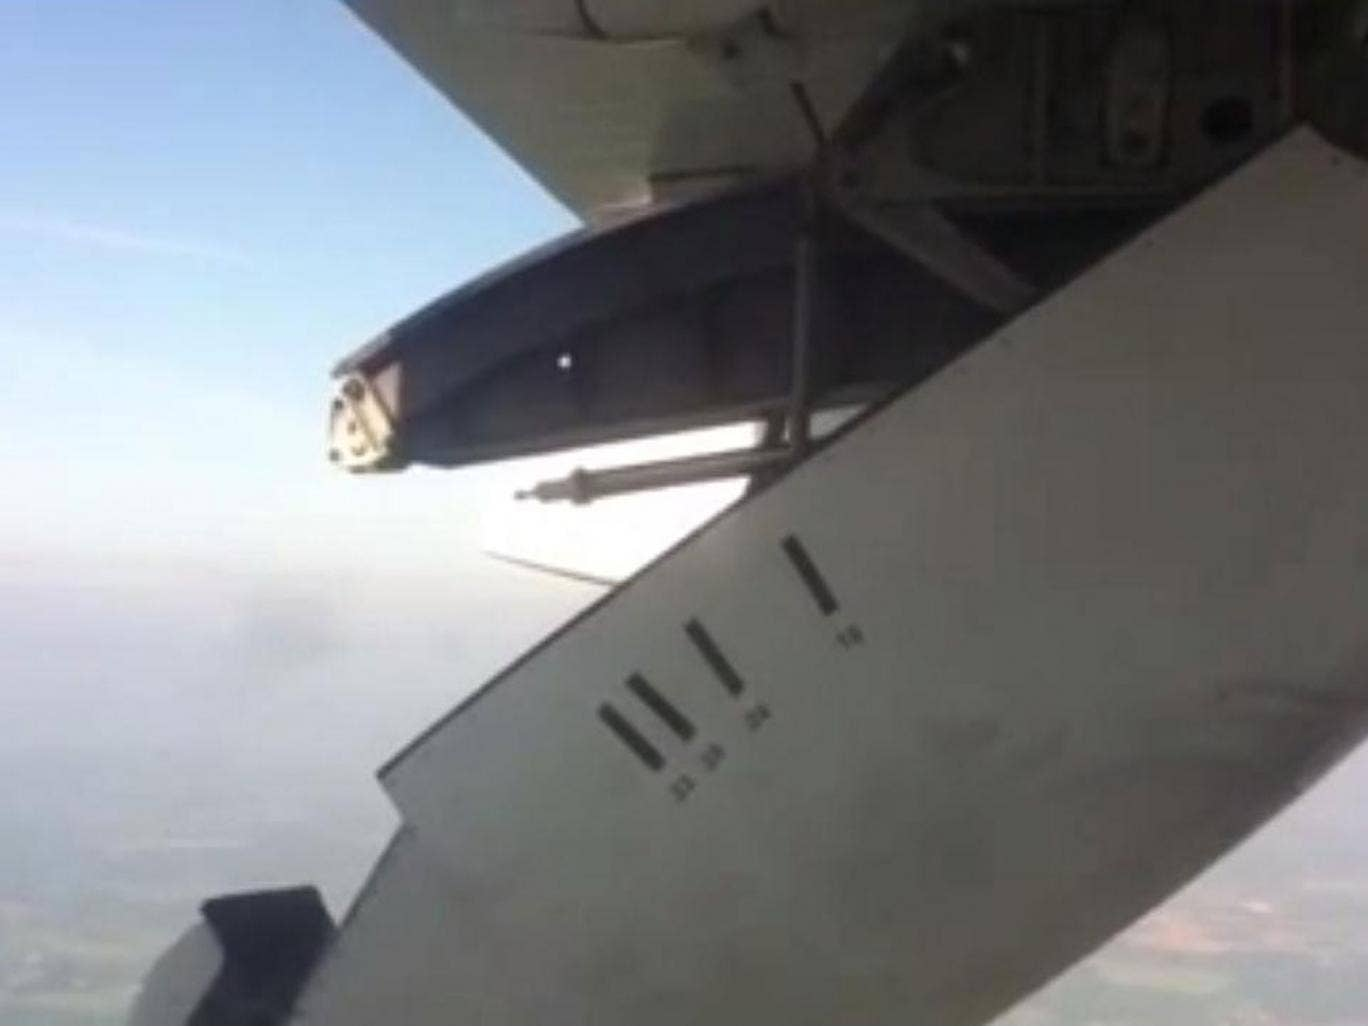 A still from footage of the City Jet flight showing the moment cover of the operating mechanism on the wing became partially detached